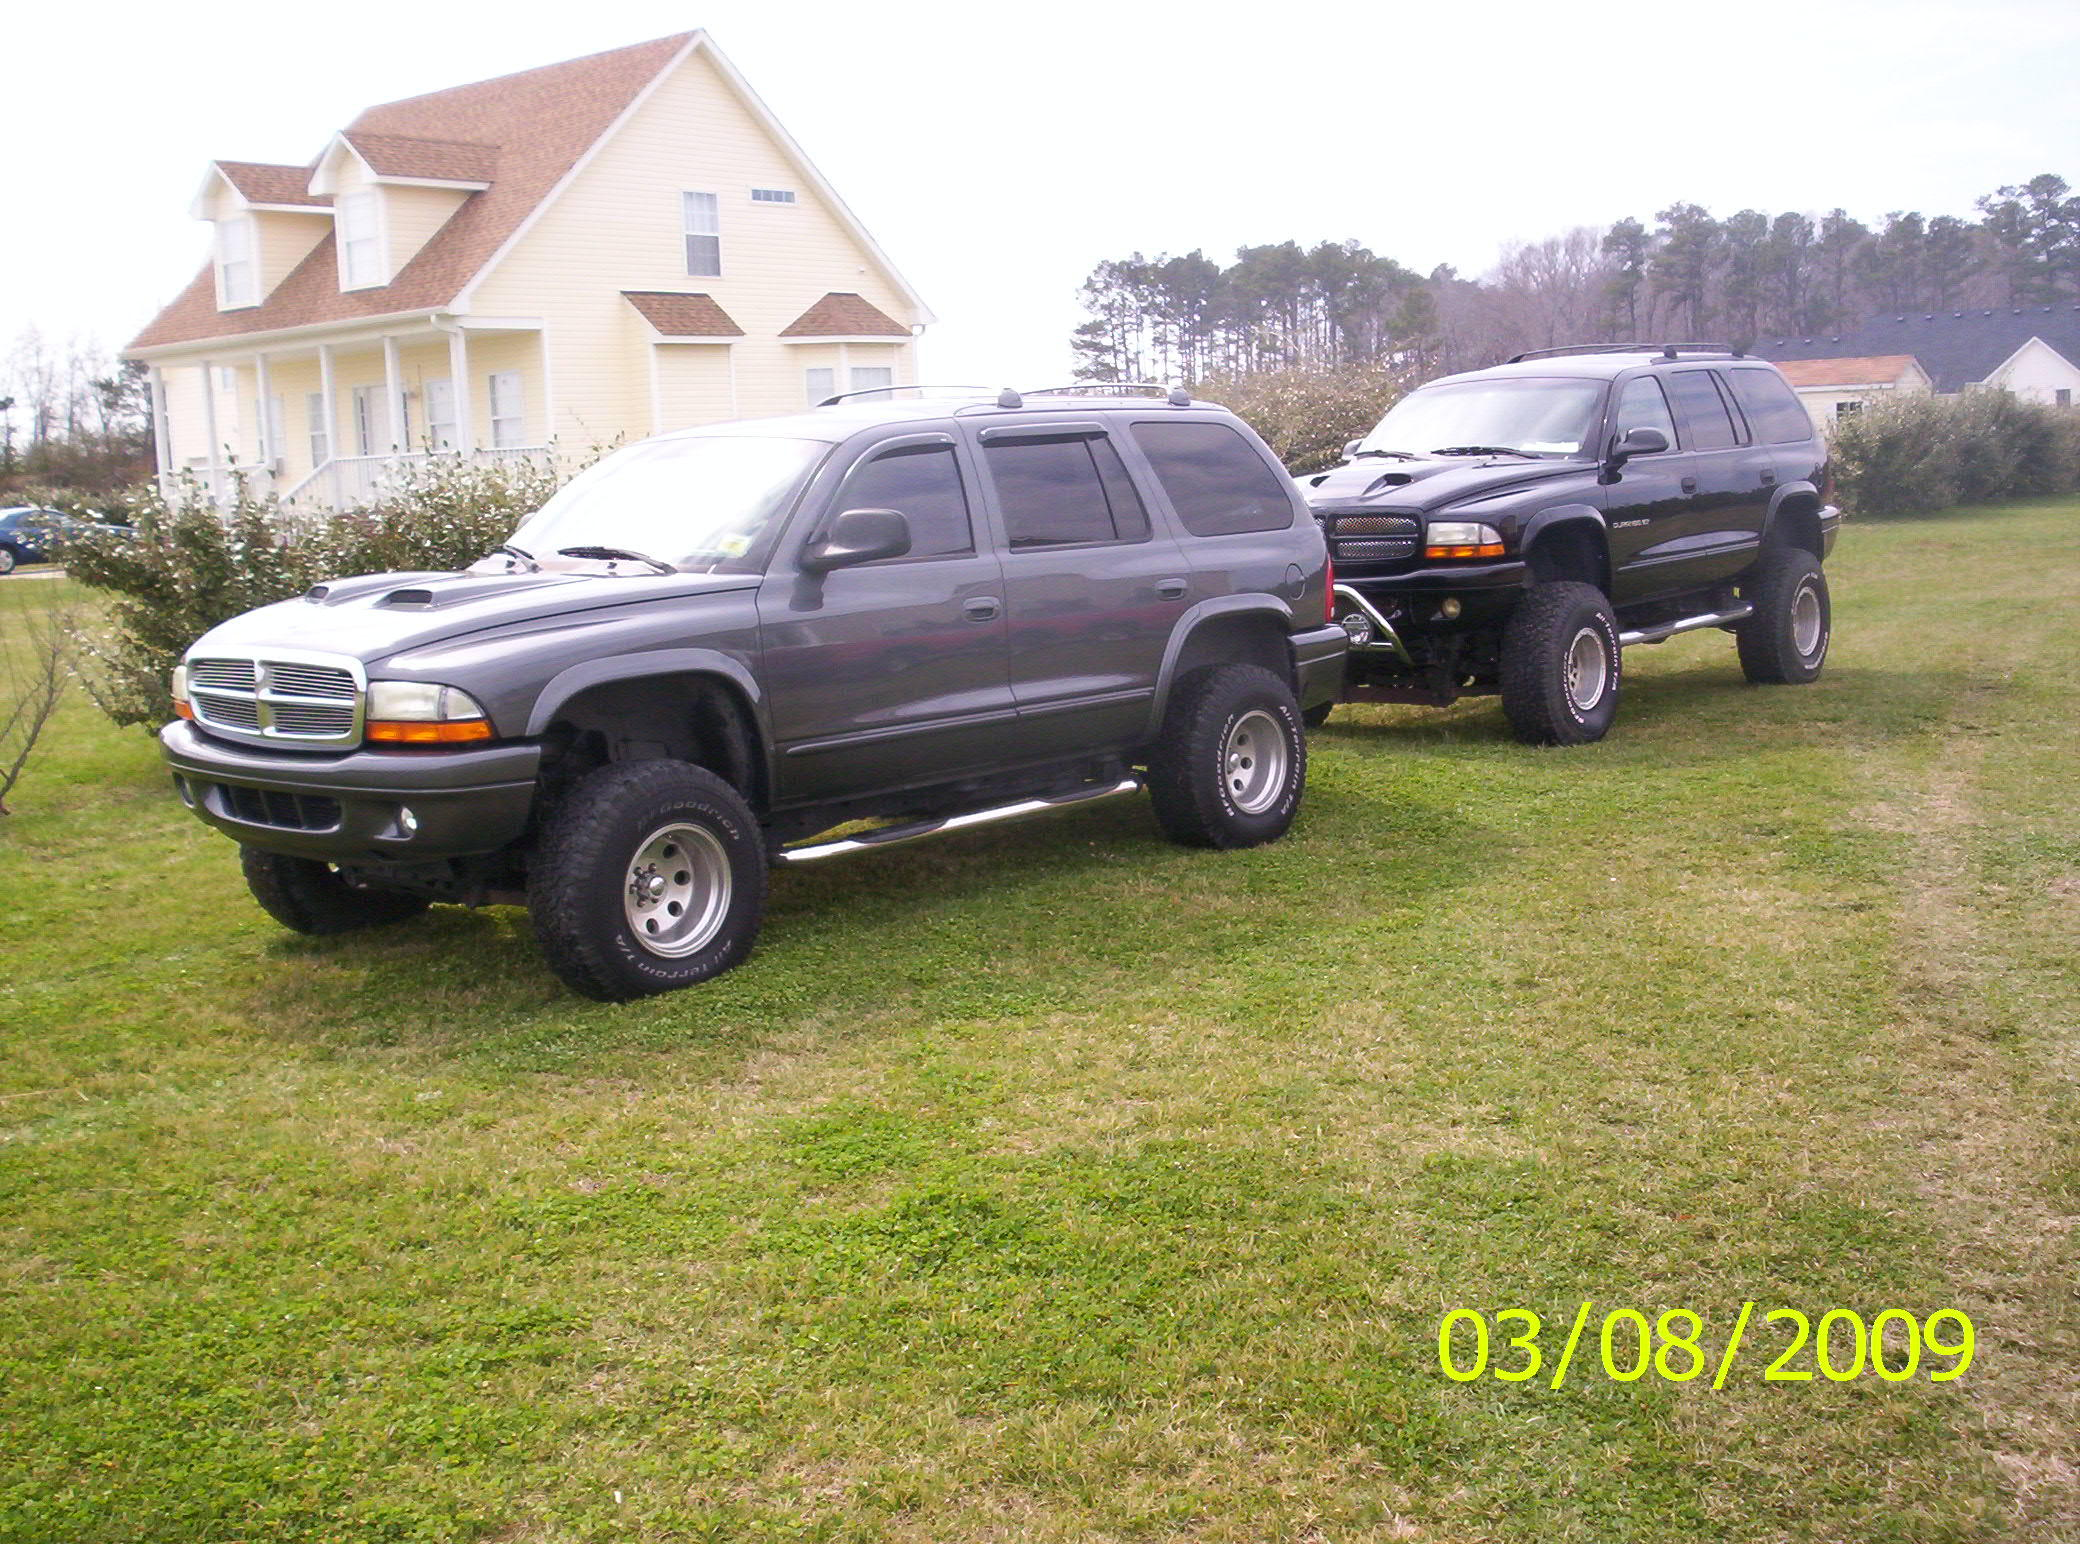 Another Imthereason 2001 Dodge Durango Post 1266696 By Imthereason